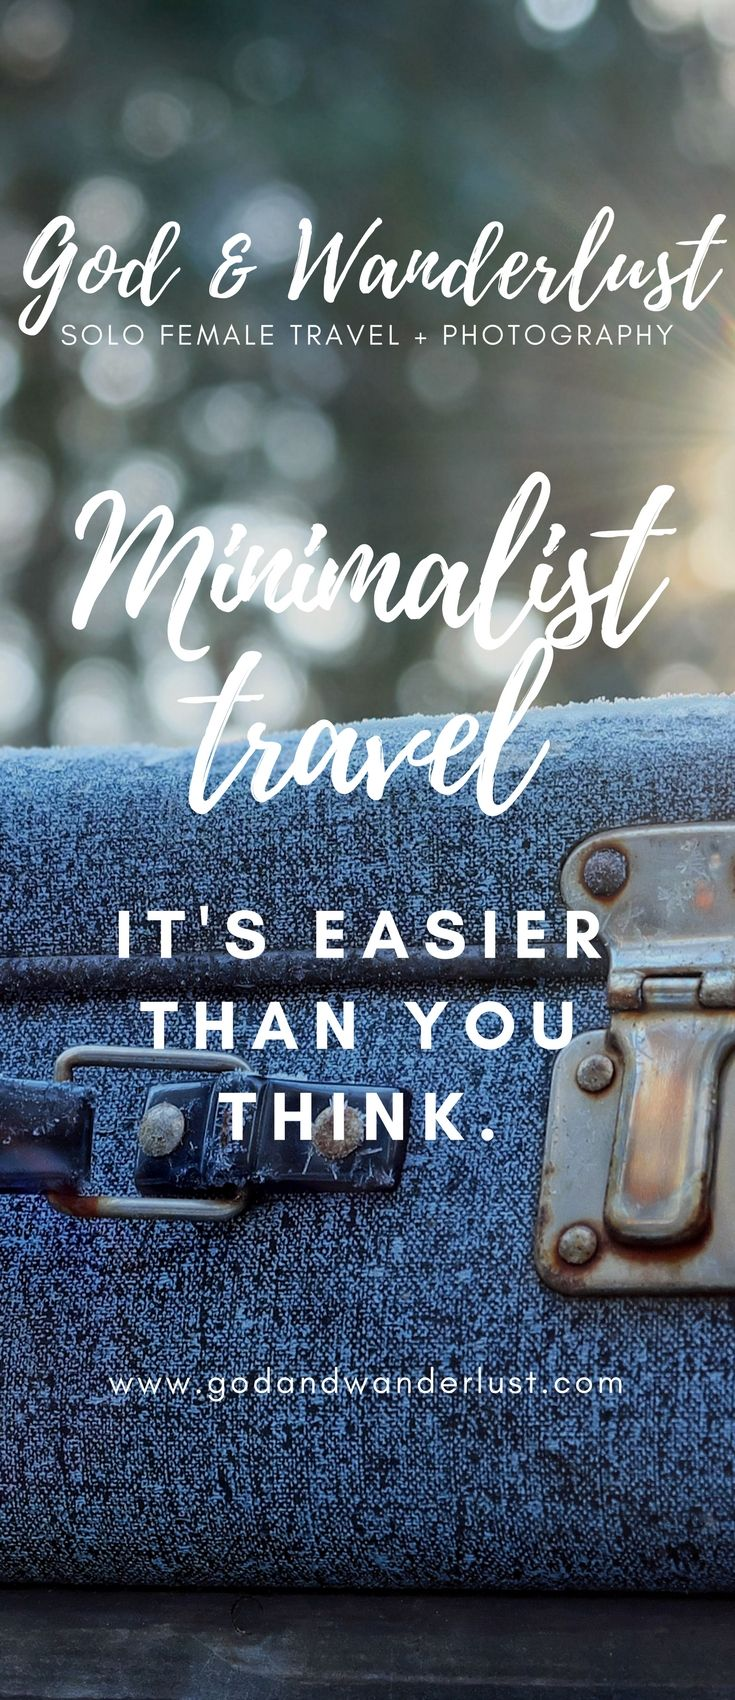 Minimalist travel experience during the scorching heat of summertime in Dubai. Tips on minimalist packing and what I learned.